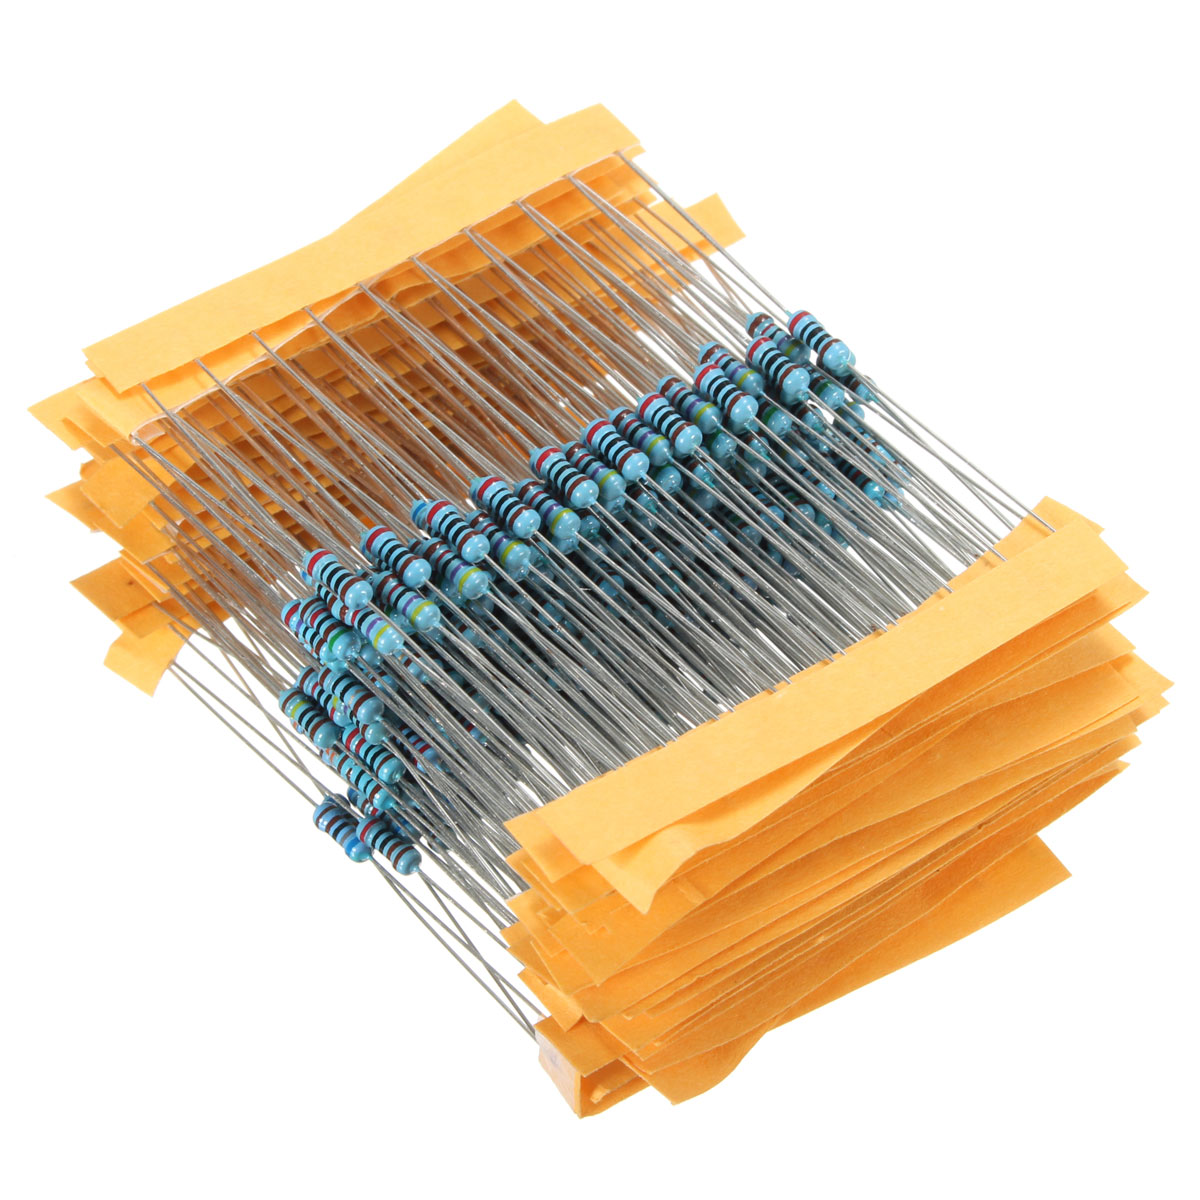 New 300Pcs DIY Led Excellent Professiona <font><b>Resistors</b></font> Metal Film 300 Pack 10 each 30 values 1/4w 1% Kit/Assortment <font><b>Chip</b></font> Set image